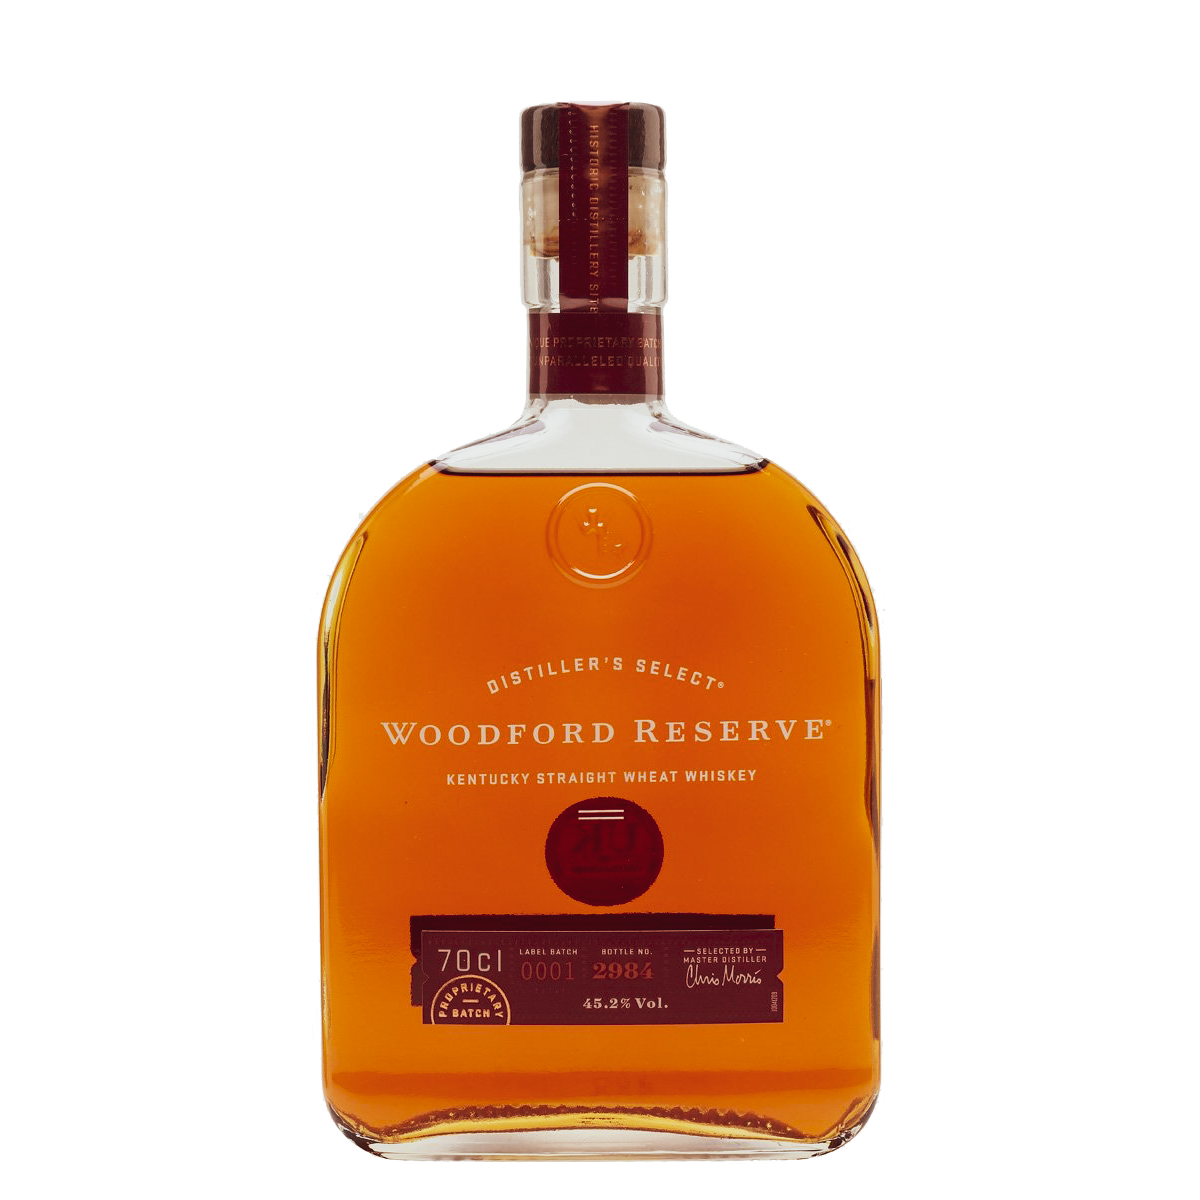 Woodford Reserve Wheat Whiskey